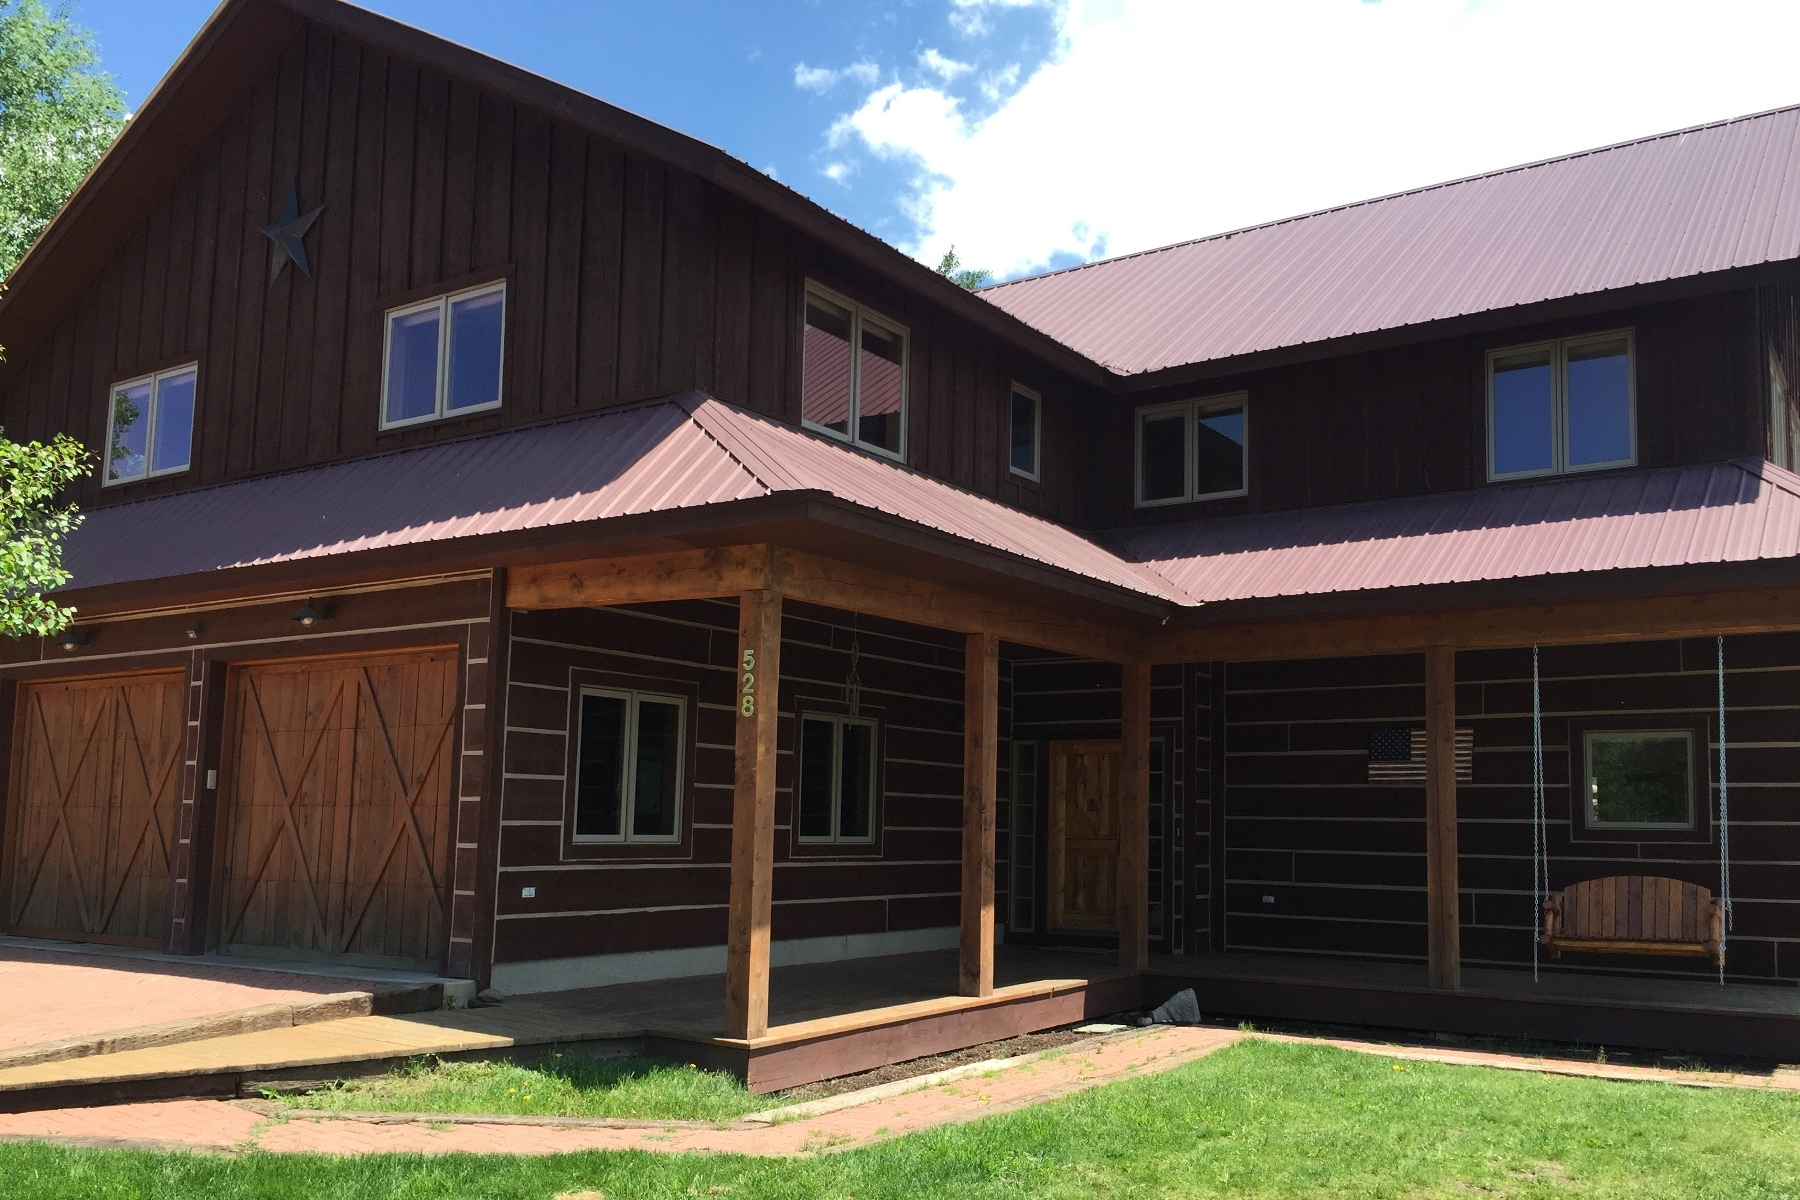 Single Family Home for Sale at Fun Family Home 528 Slate River Drive Crested Butte, Colorado, 81224 United States